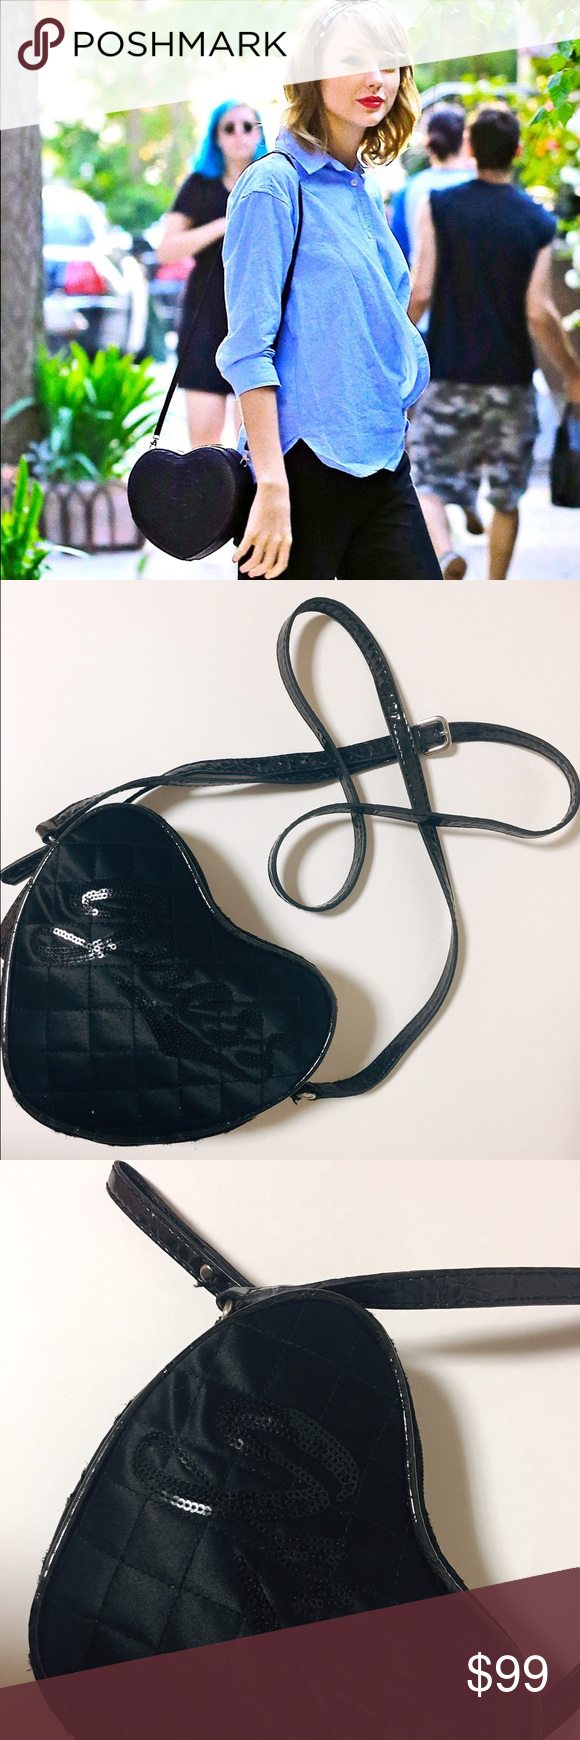 abb938c40 Guess Black Heart Sequined logo Crossbody bag Super cute and adorable heart  shaped crossbody from GUESS